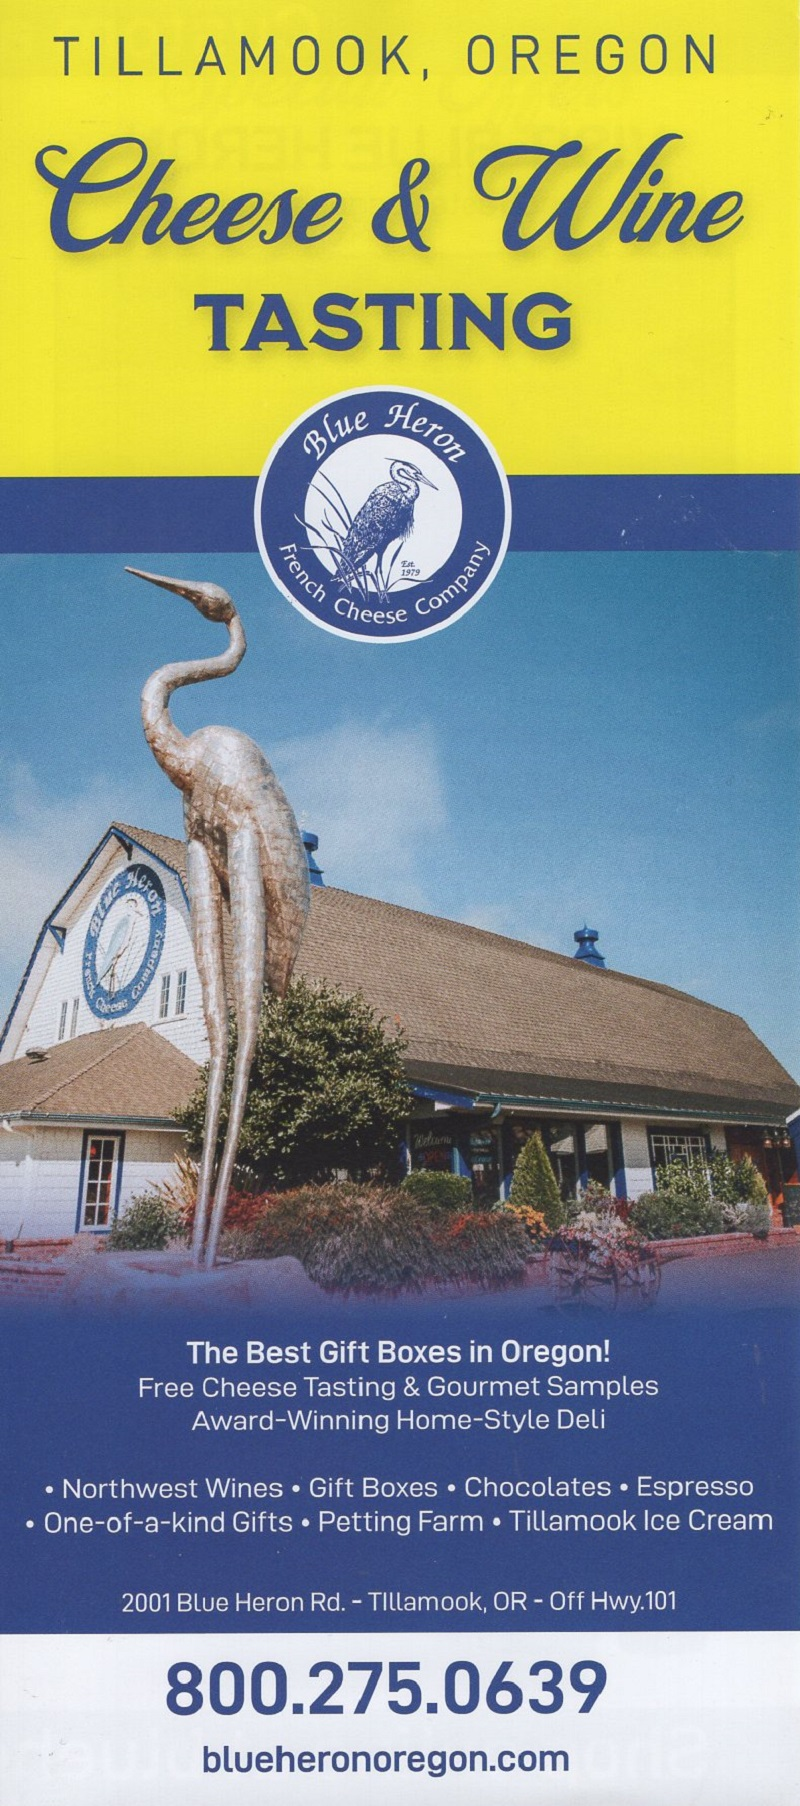 Visit the Blue Heron Cheese